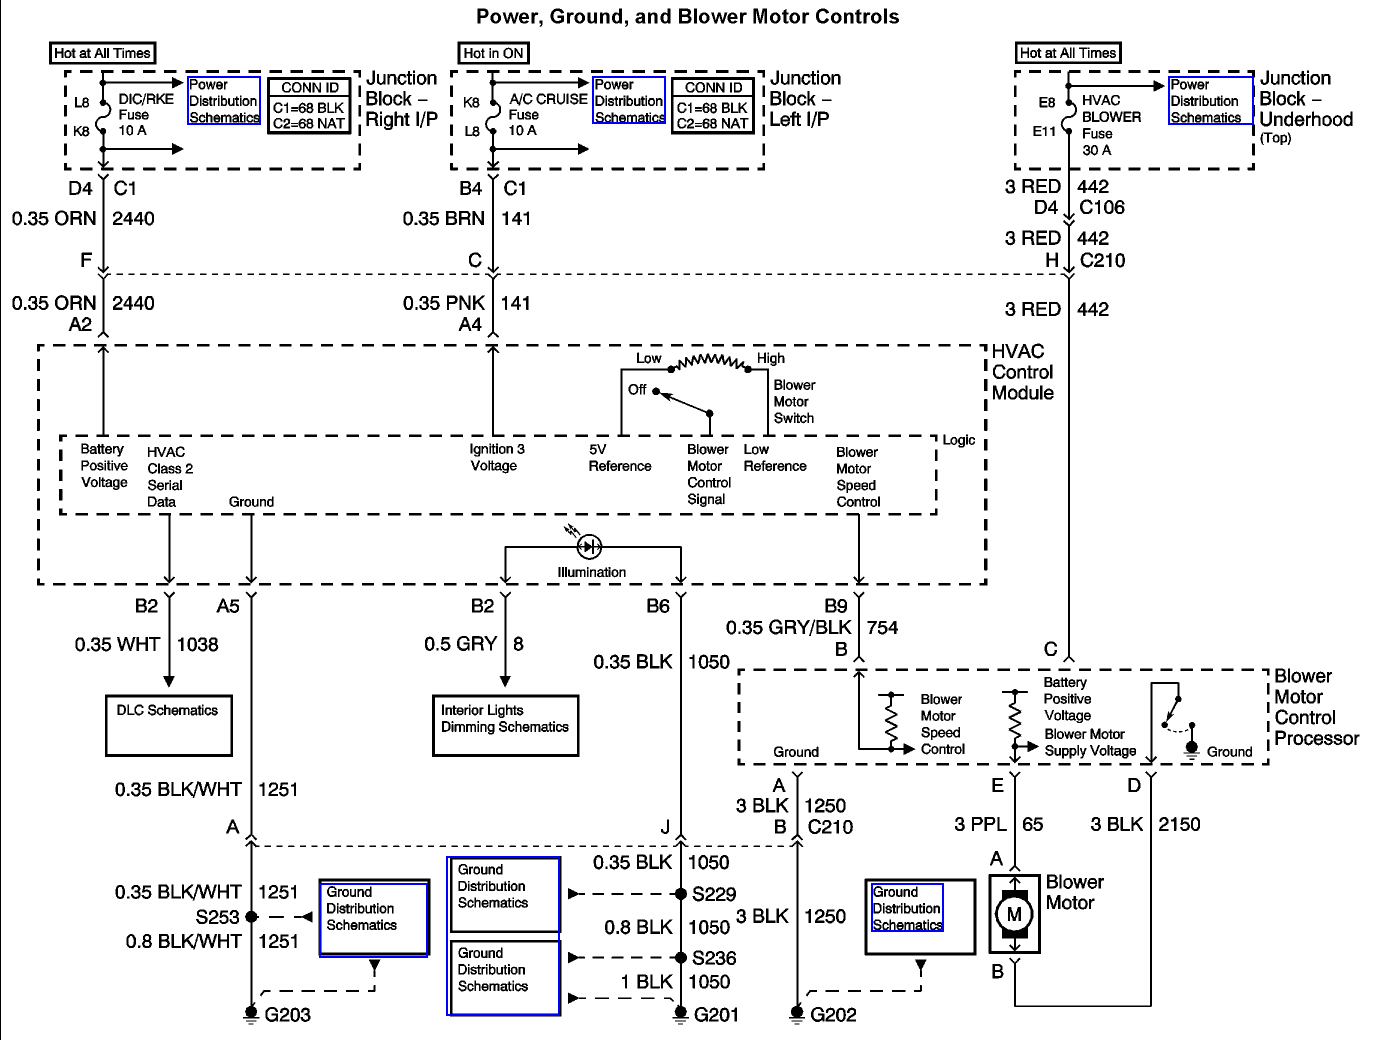 04 monte carlo wiring diagram 19 sg dbd de \u2022ac heat blower fan not working electrical problem 6 cyl two wheel rh 2carpros com 2004 monte carlo wiring diagram 2004 chevy monte carlo wiring diagram